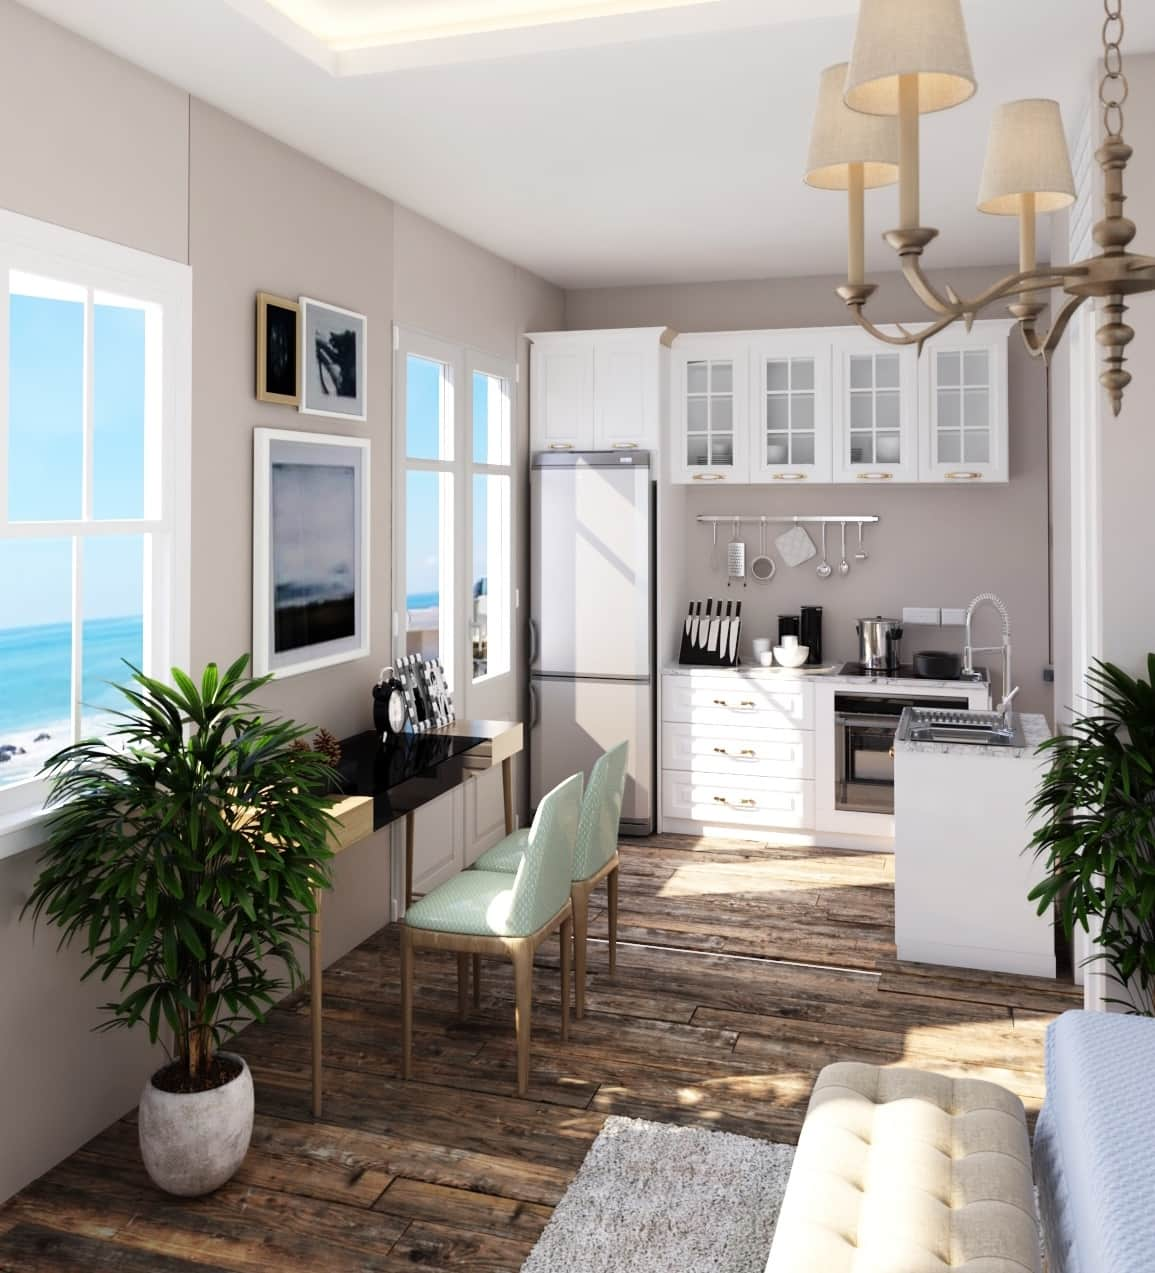 Terrace Suite kitchen and private porch with ocean views